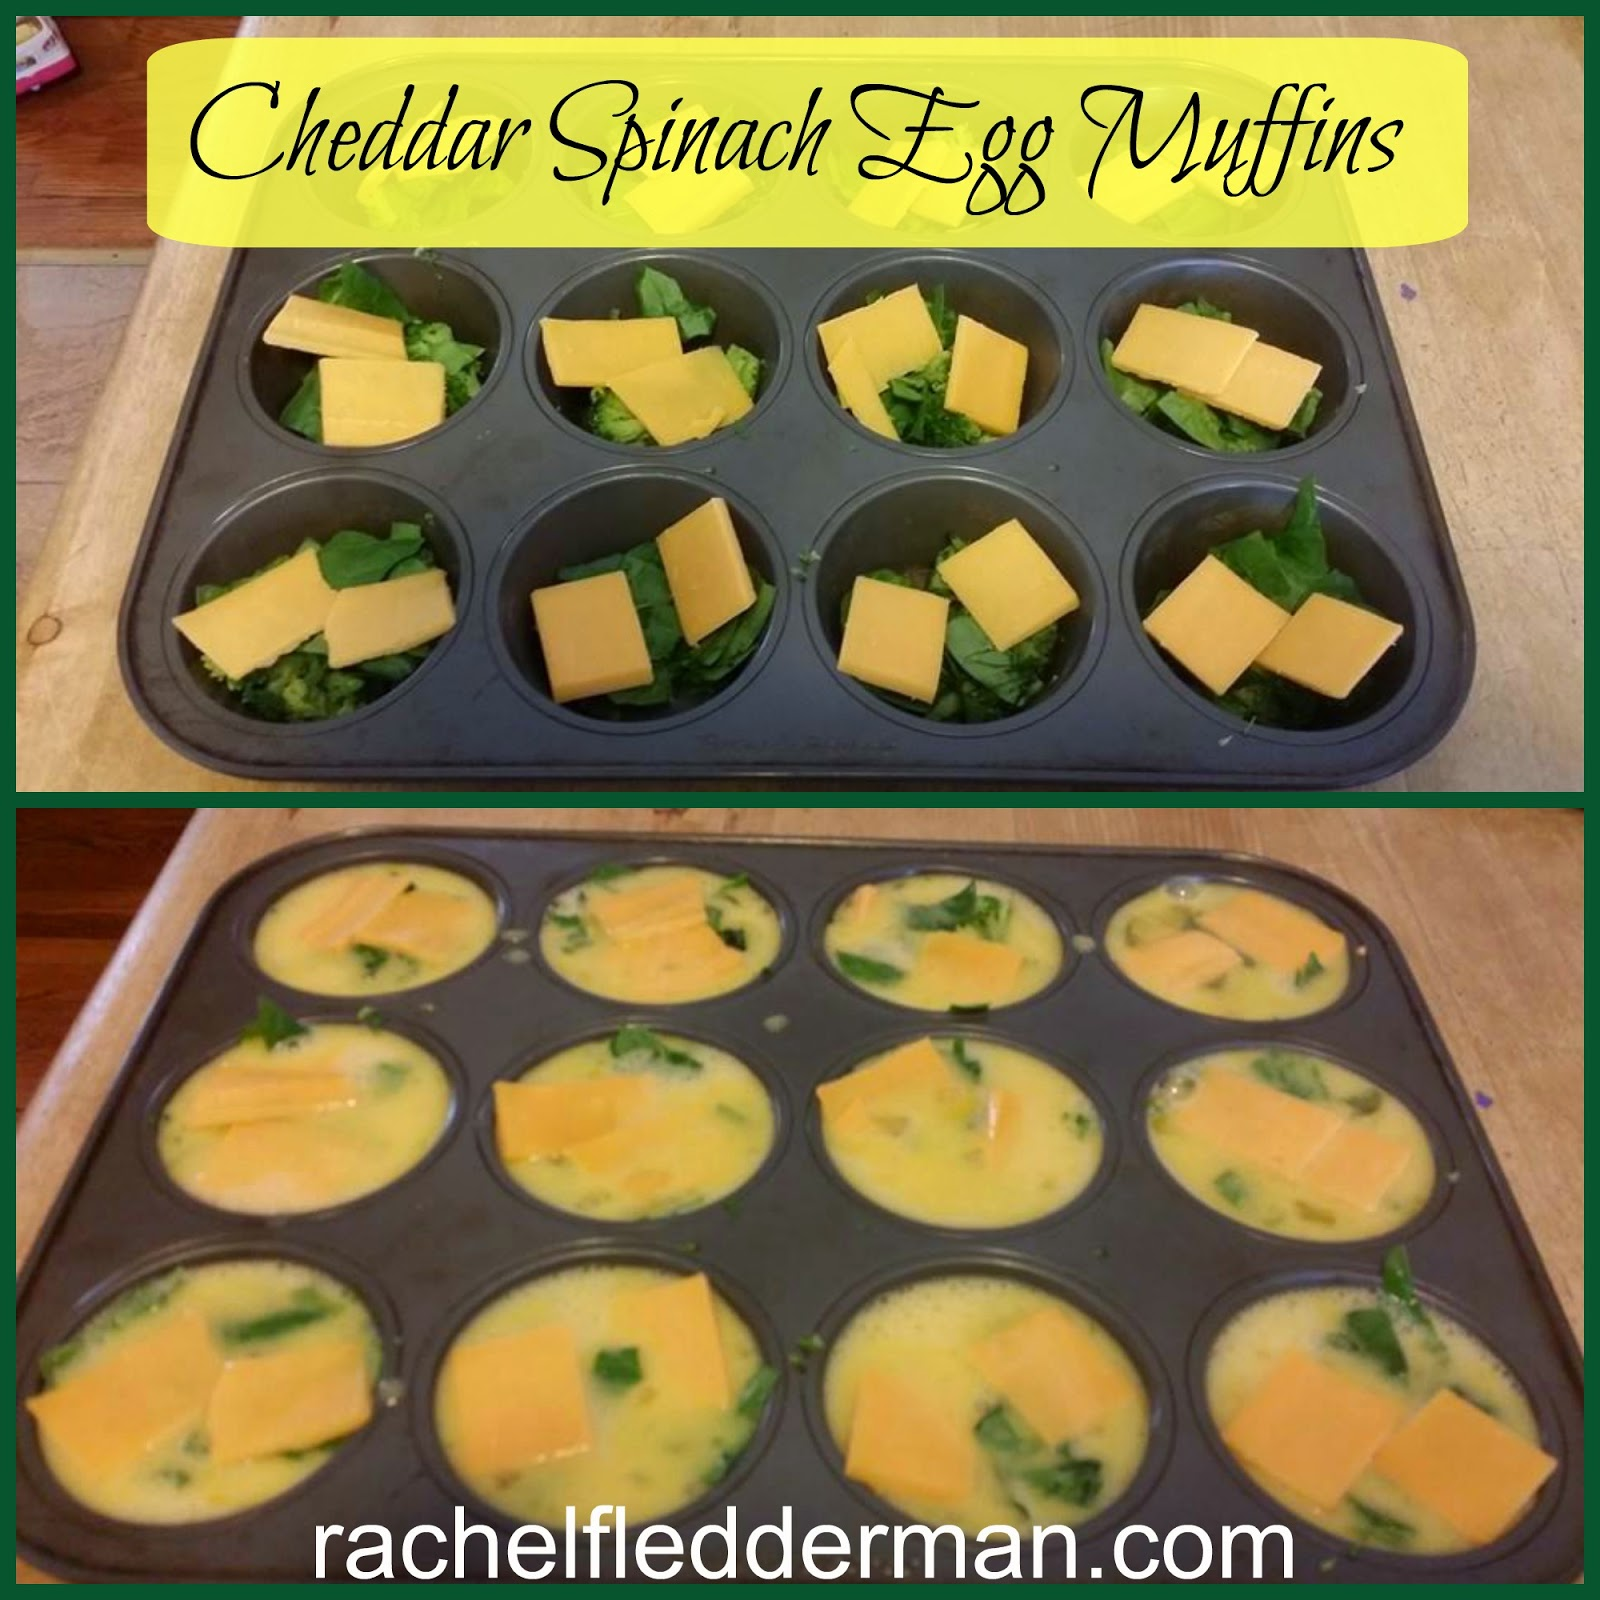 Cheddar Spinach Egg Muffin